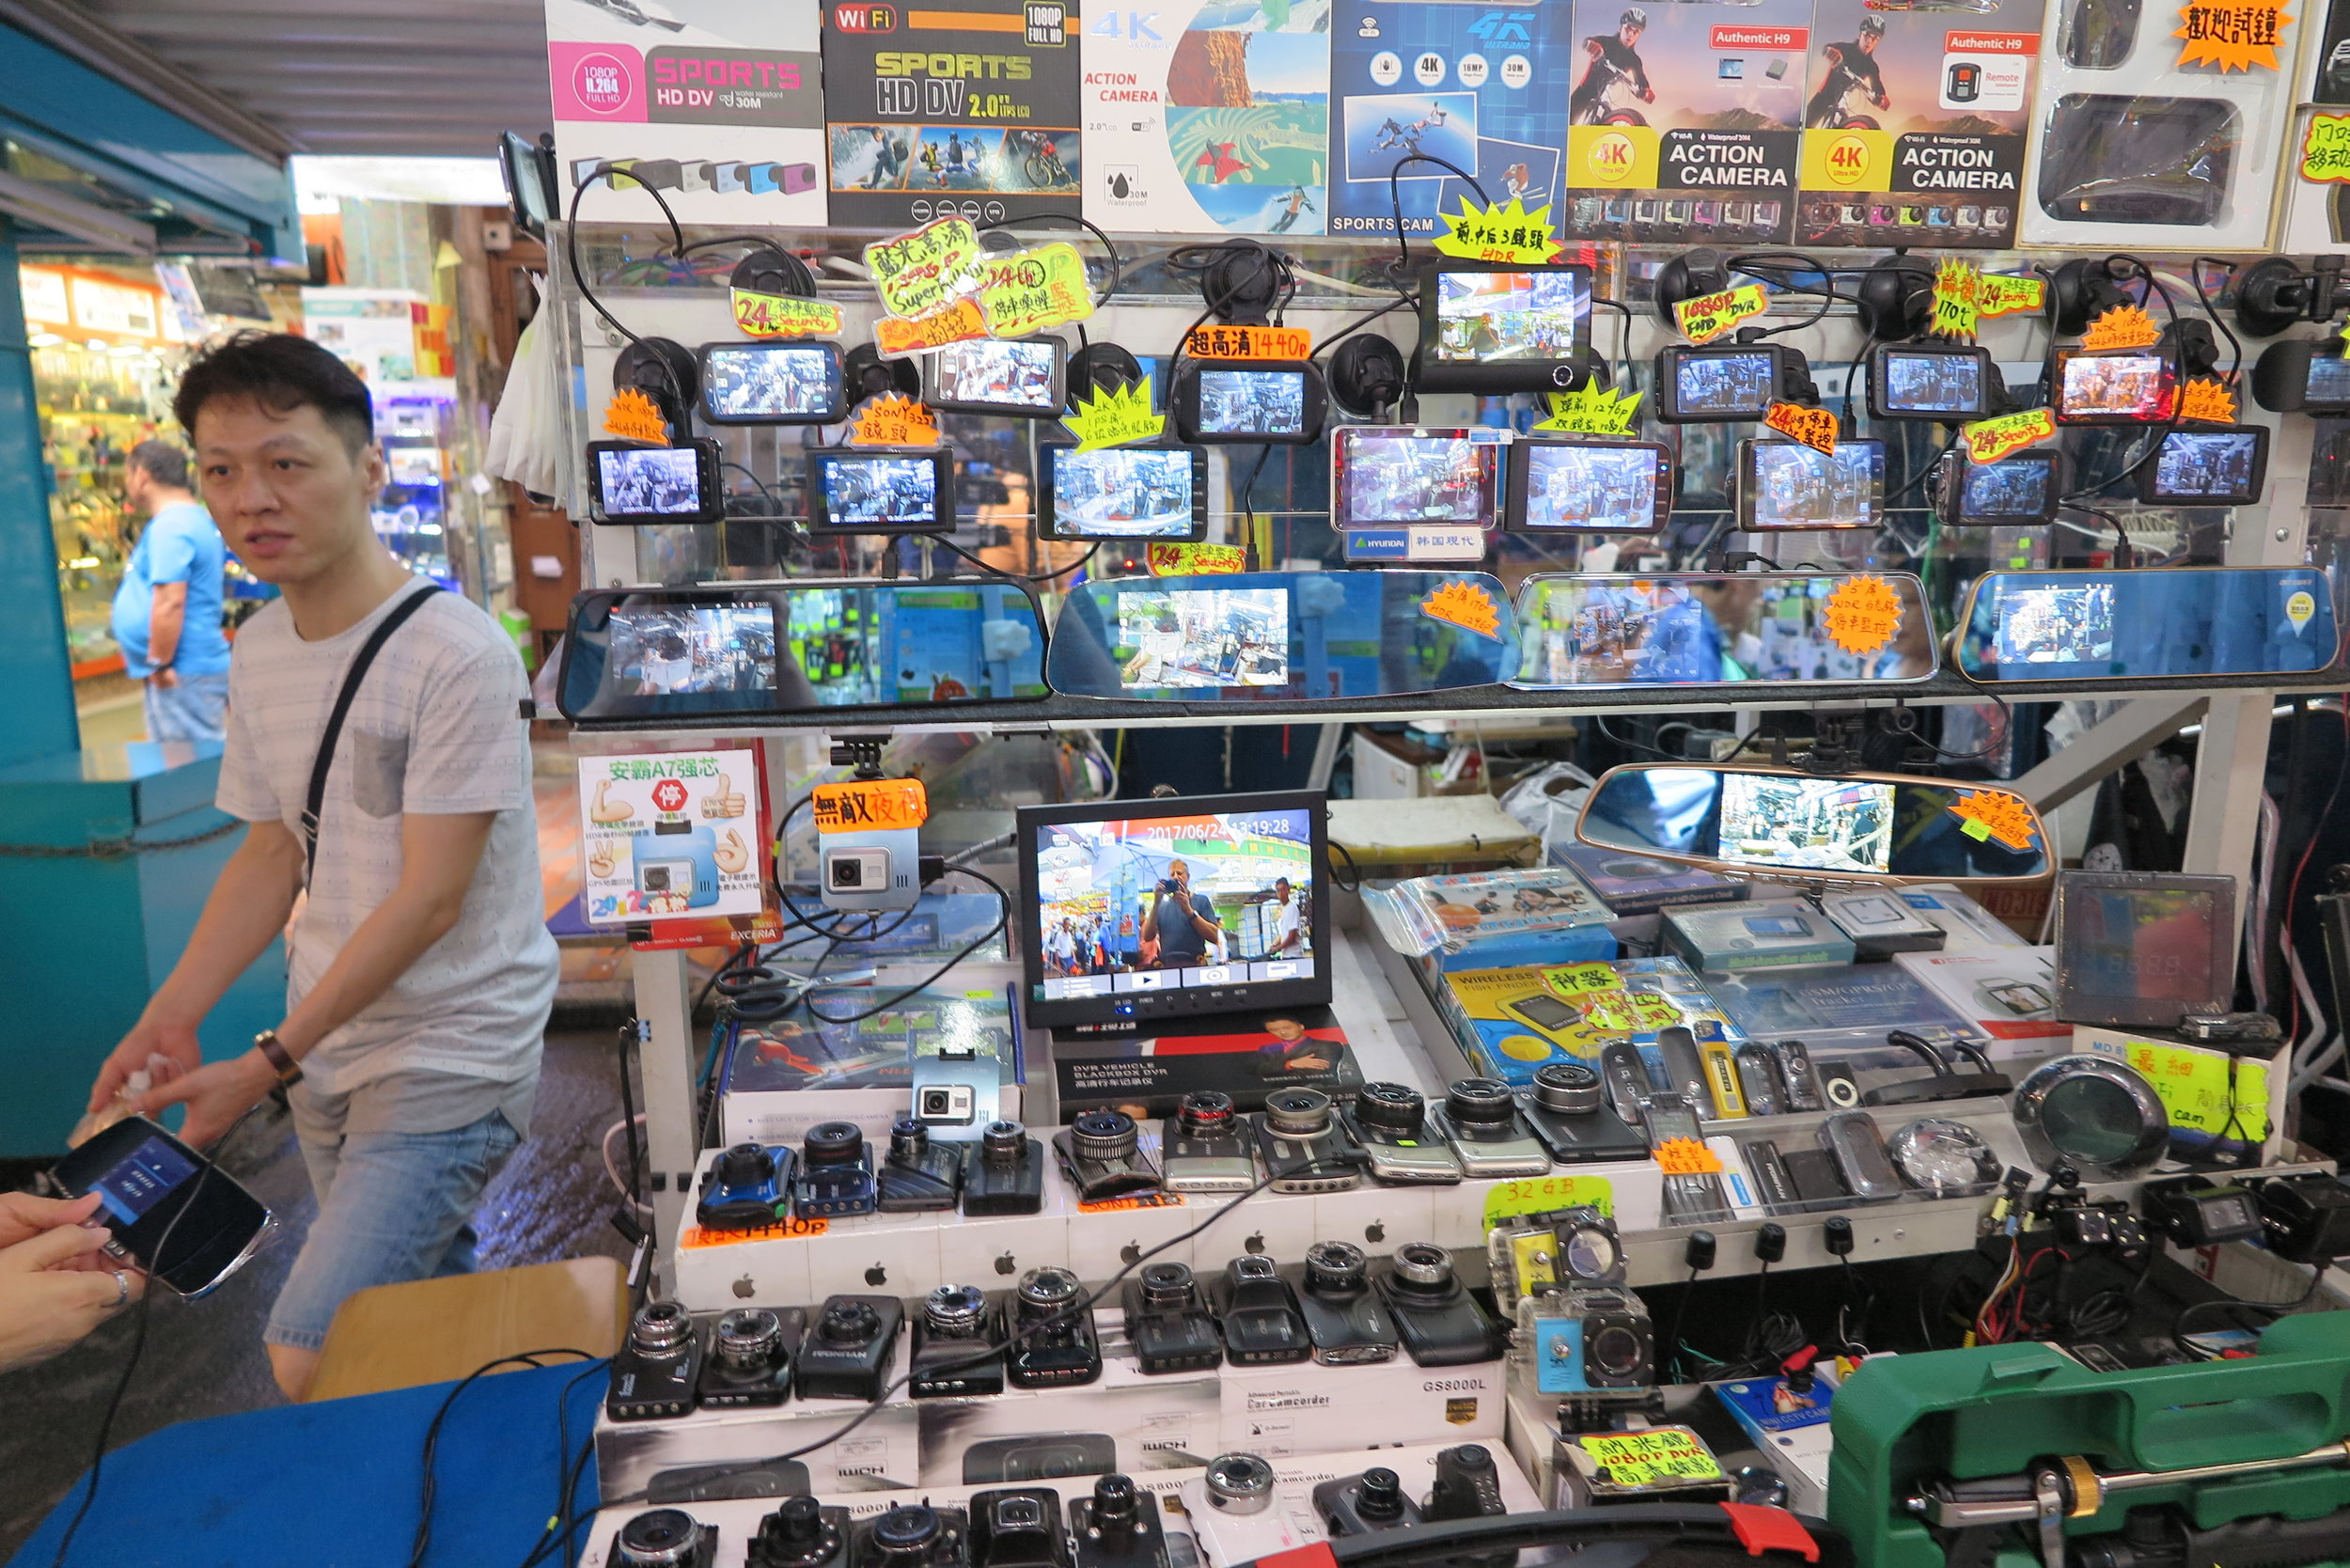 one of hundreds of electronics stalls in the street markets of Sham Shui Po in Kowloon